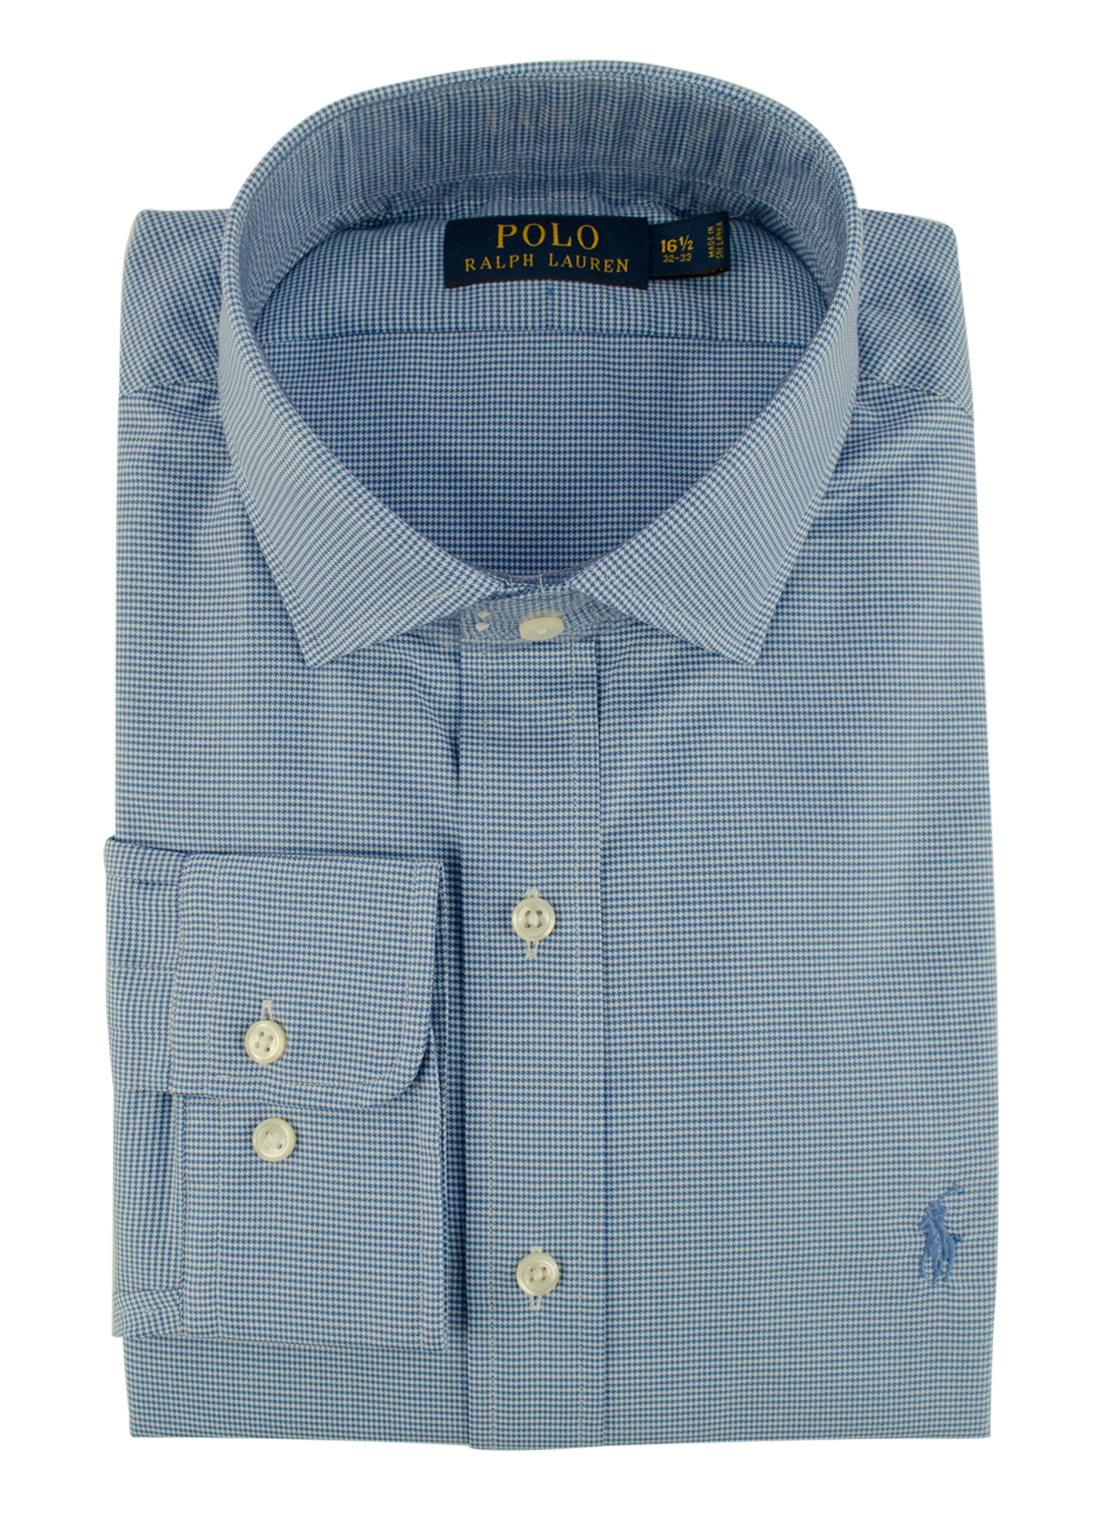 polo ralph lauren men 39 s classic fit puppytooth dress shirt